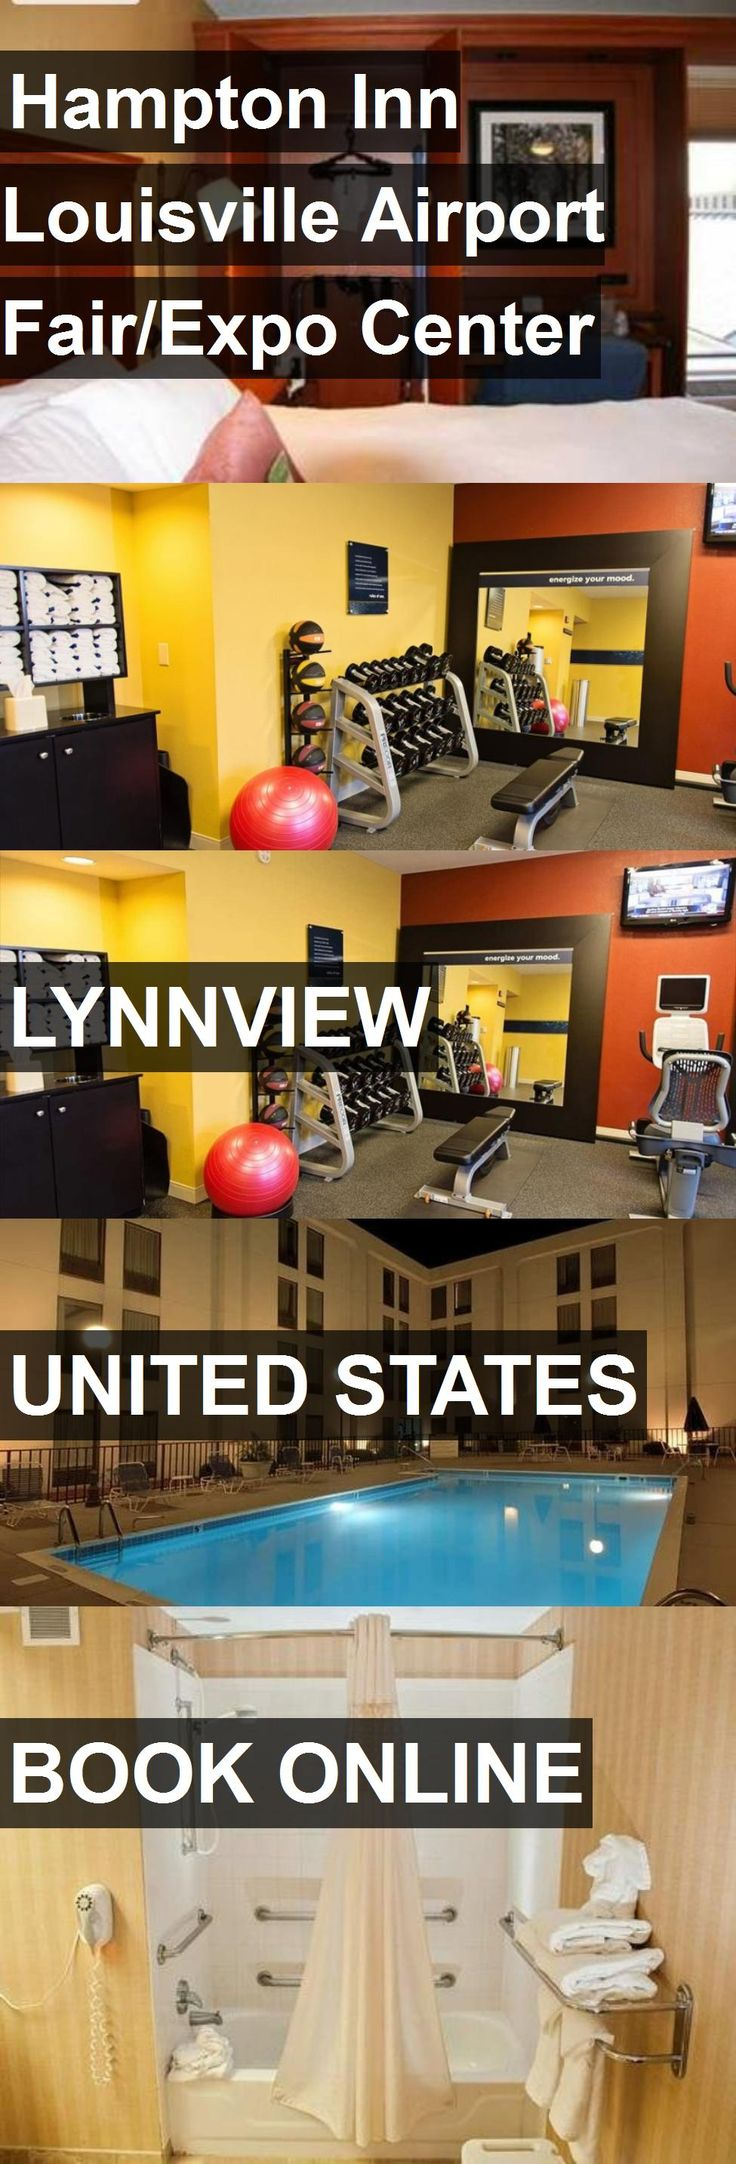 Hotel Hampton Inn Louisville Airport Fair/Expo Center in Lynnview, United States. For more information, photos, reviews and best prices please follow the link. #UnitedStates #Lynnview #travel #vacation #hotel